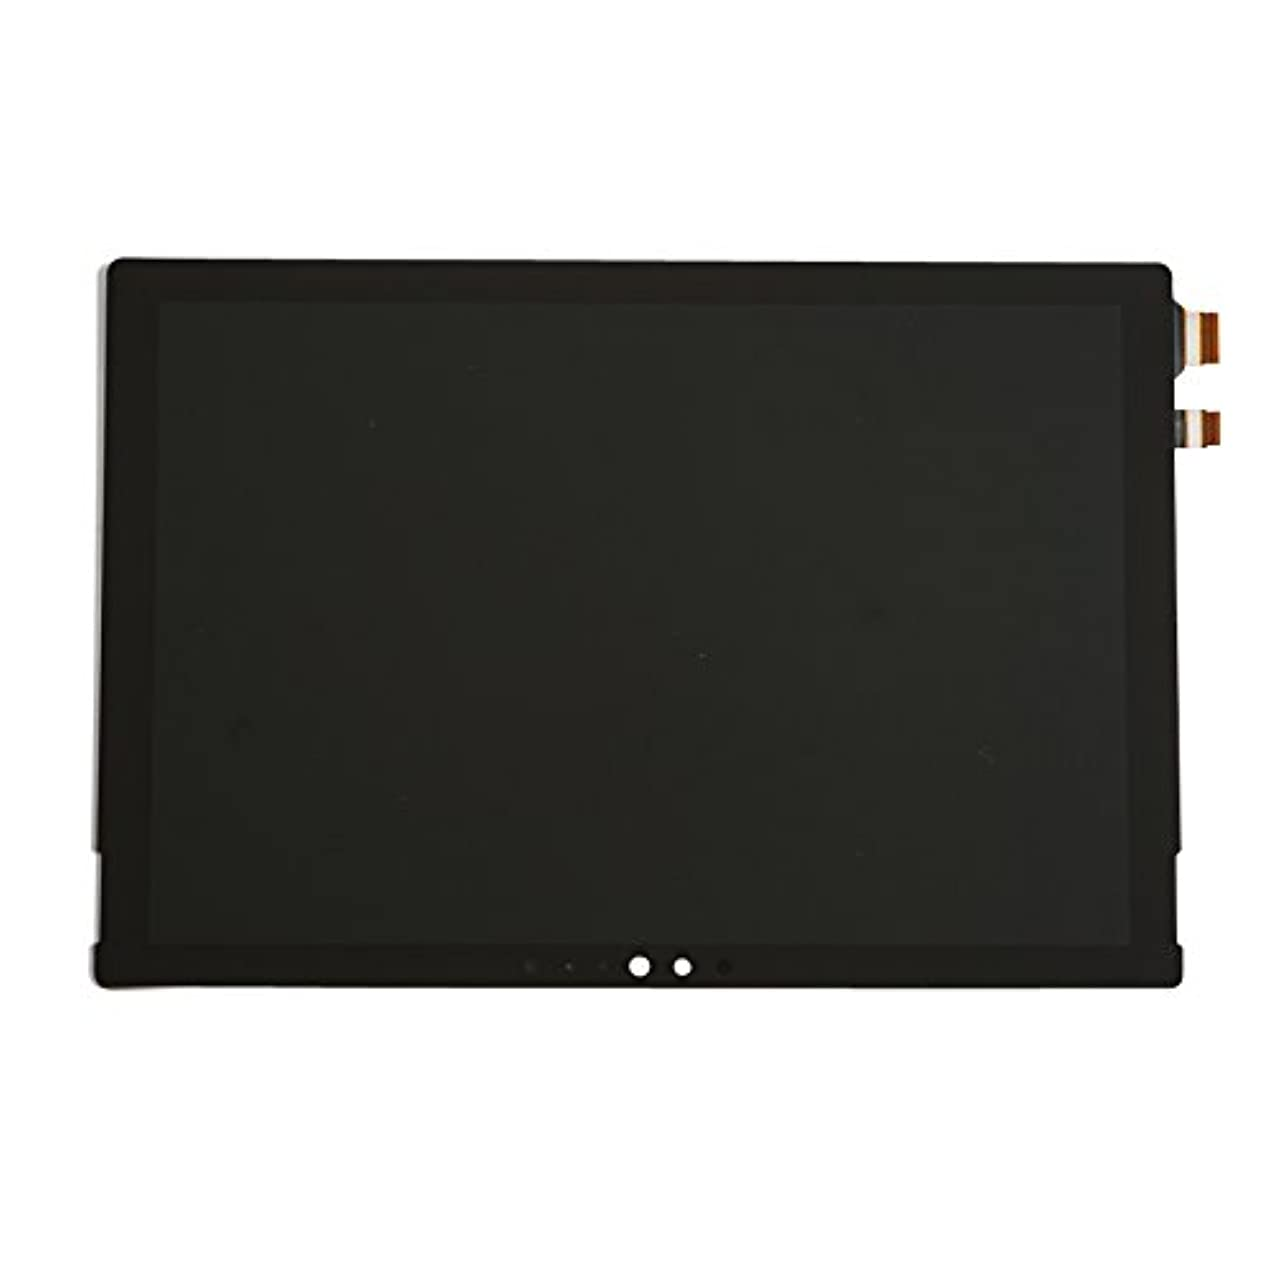 LCD Digitizer Touch Screen Display Assembly for Microsoft Surface Pro 4 Replacement Repair Part